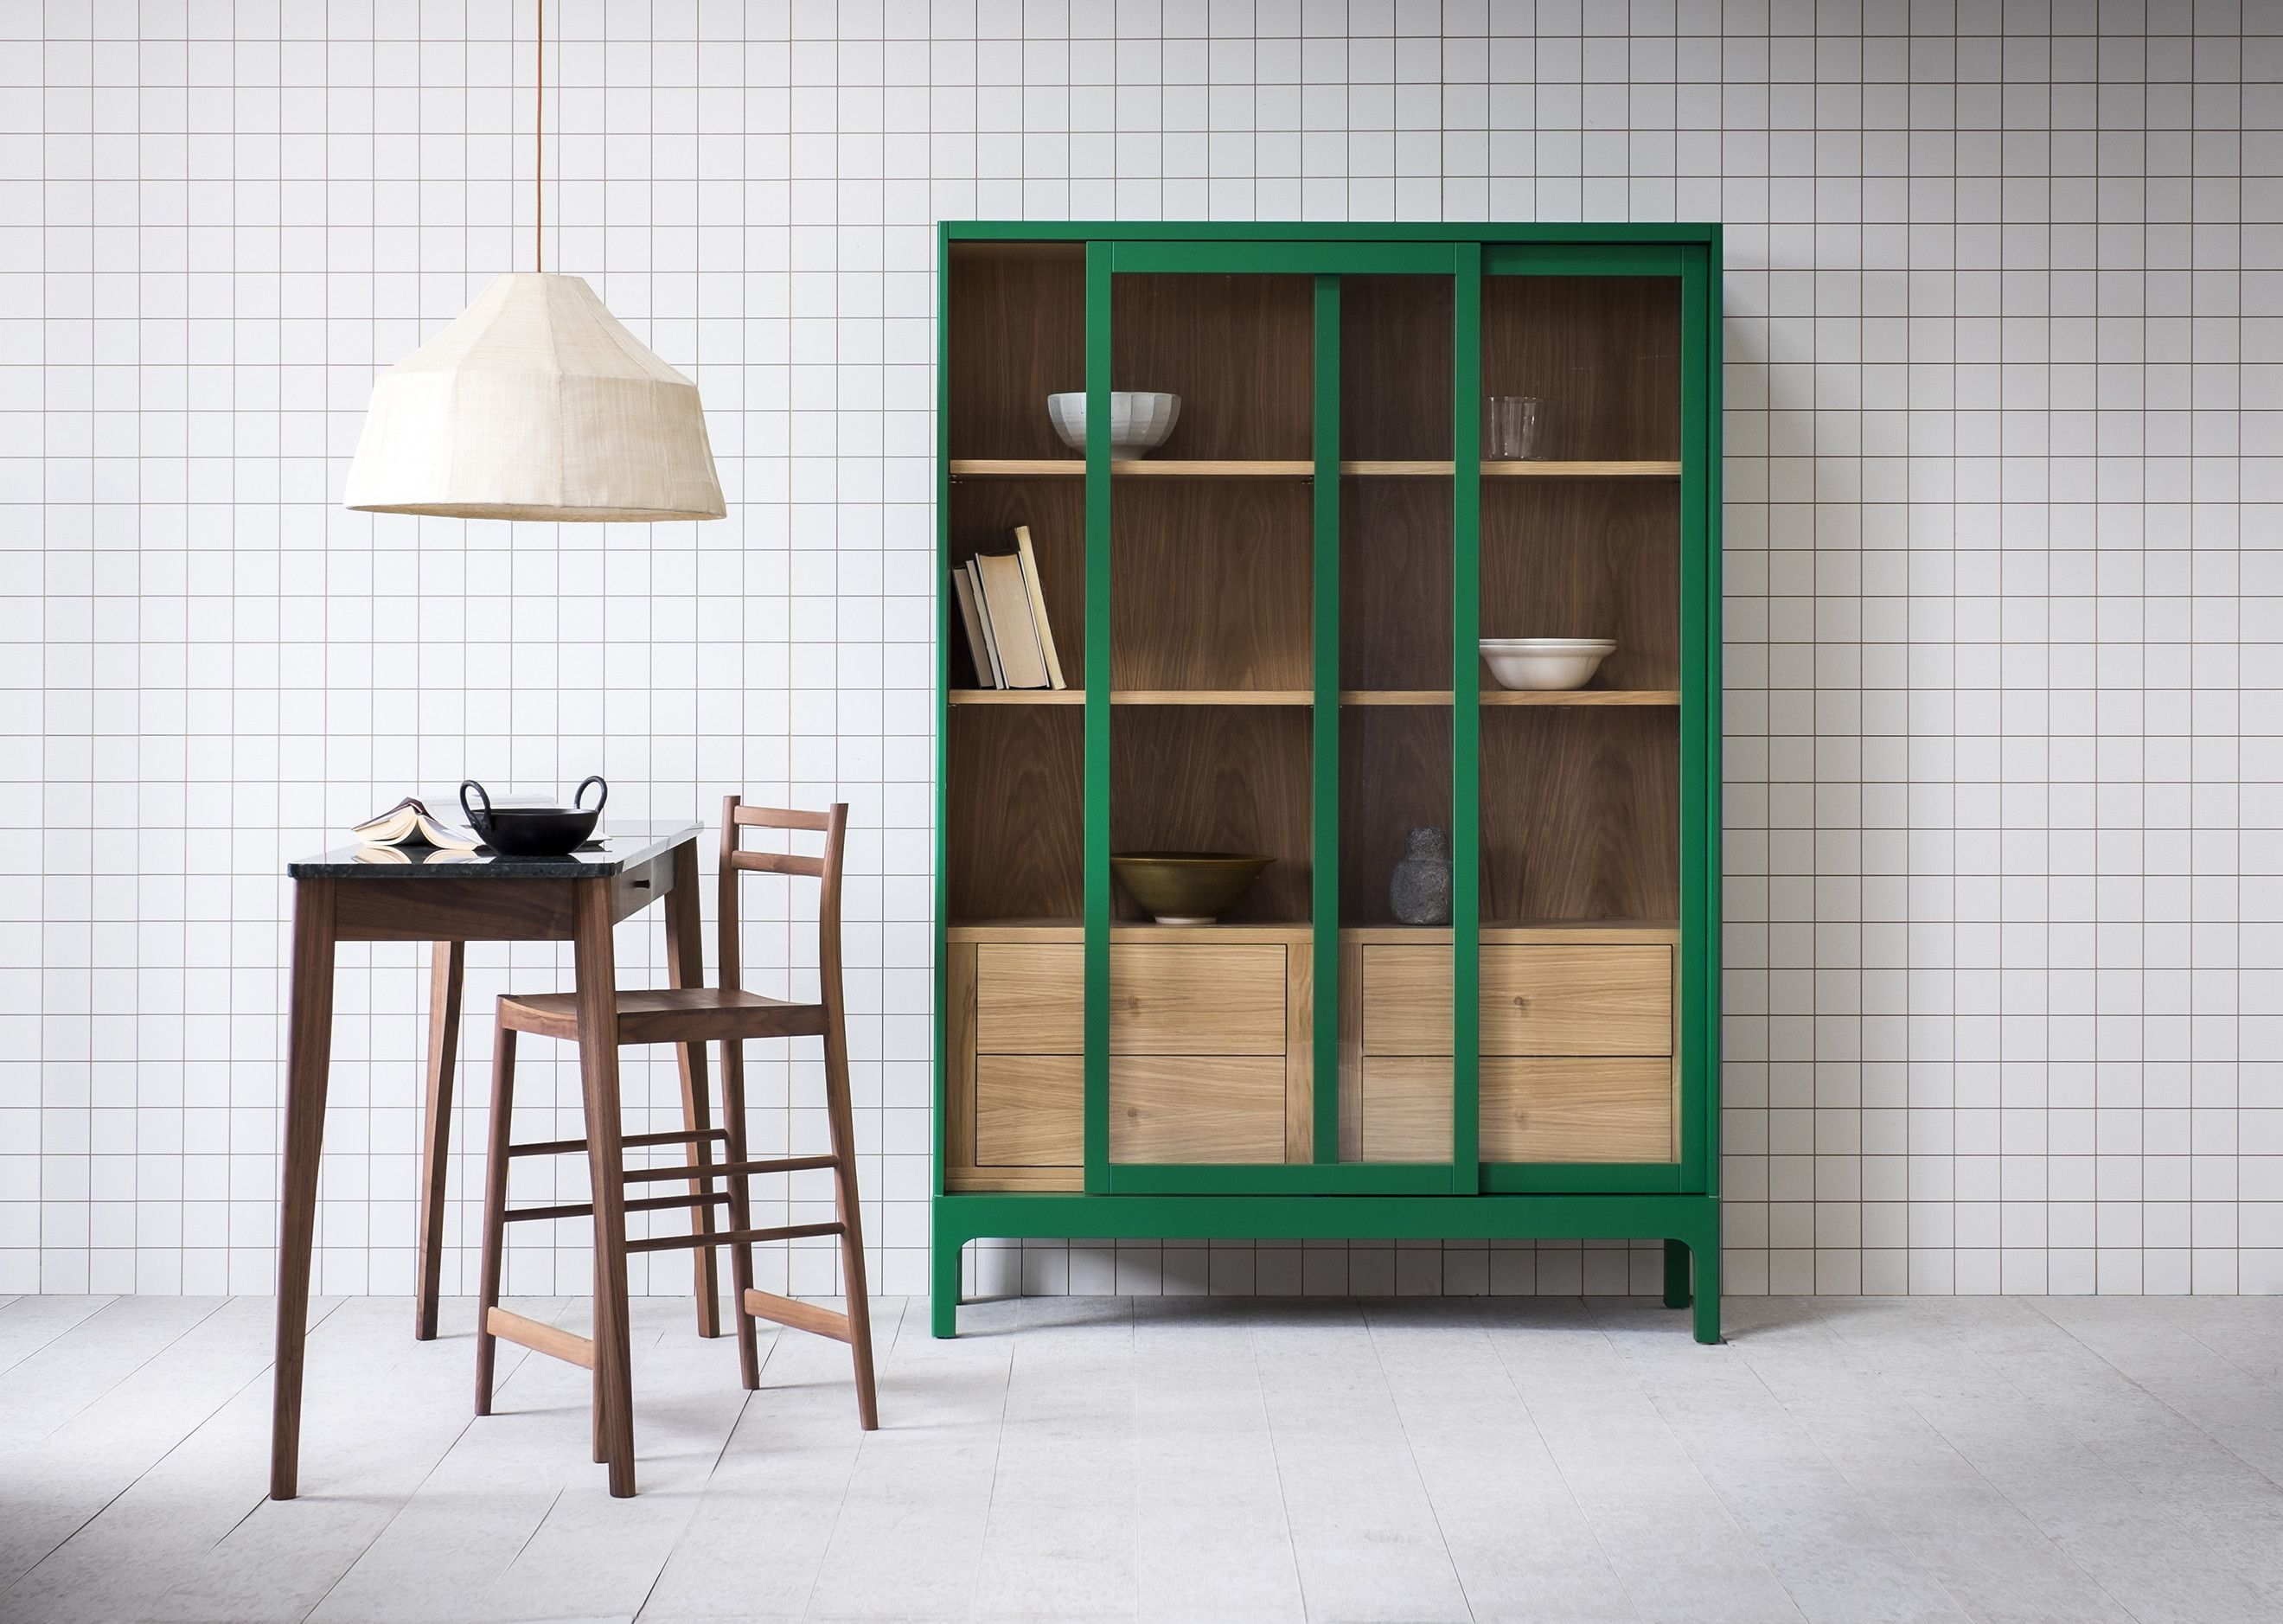 The Joyce cabinet has sliding glass fronted doors and a timber lined